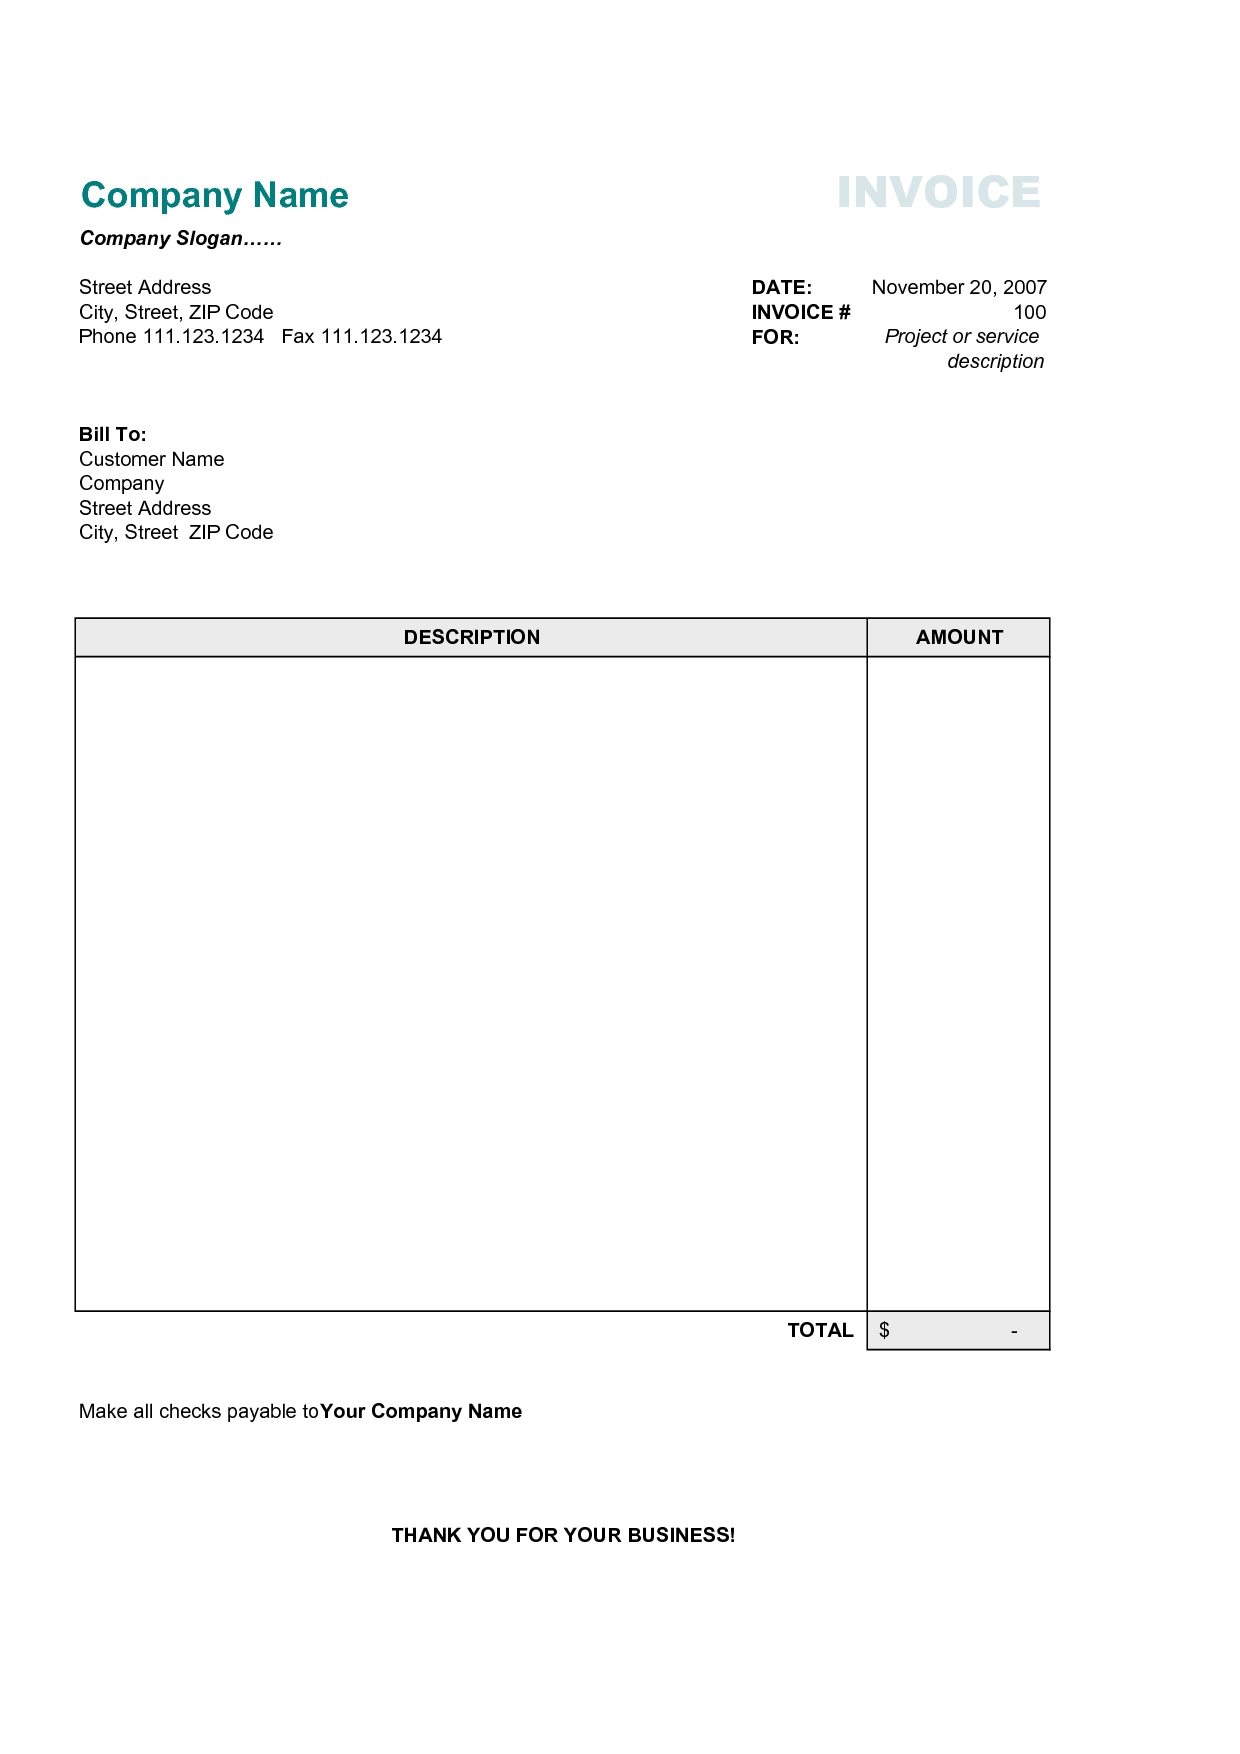 free business invoices download pay stub template raffle ticket free business invoices